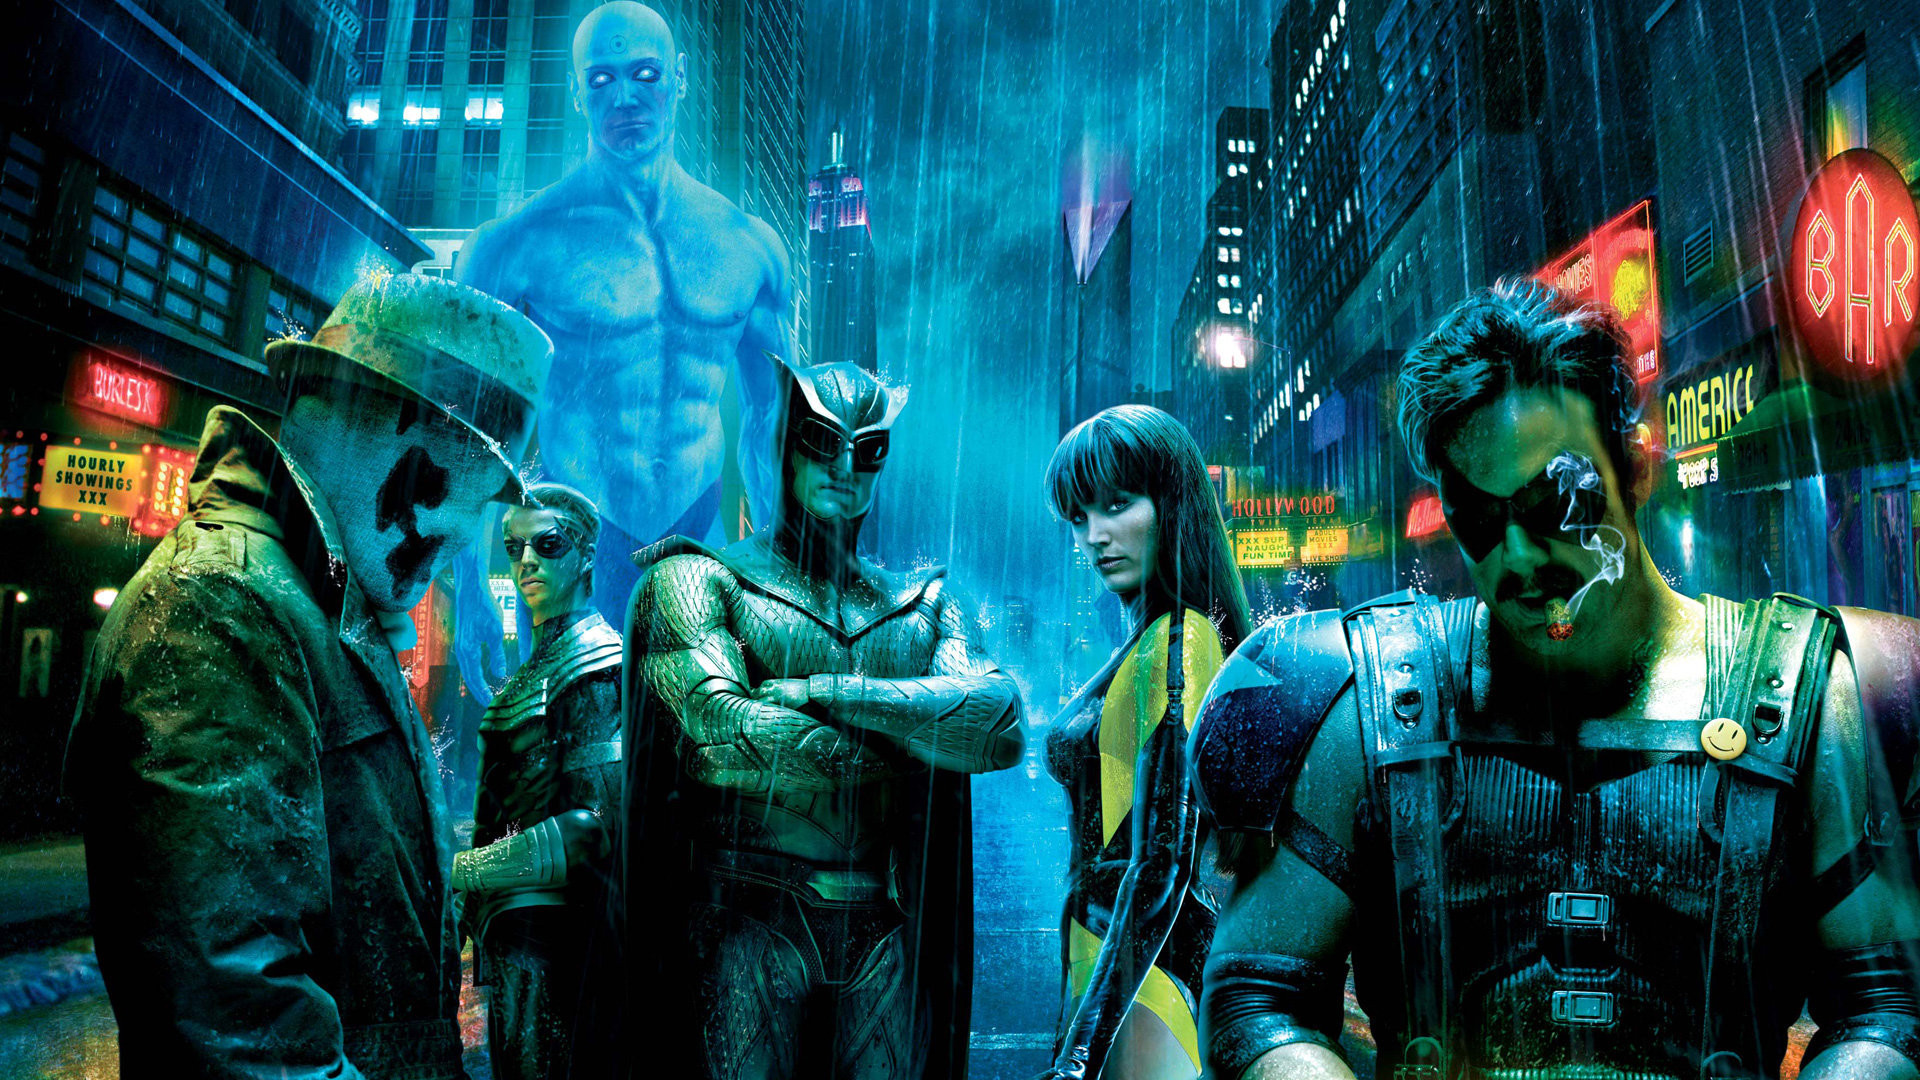 Watchmen Rorschach Silk Spectre HD Wallpaper